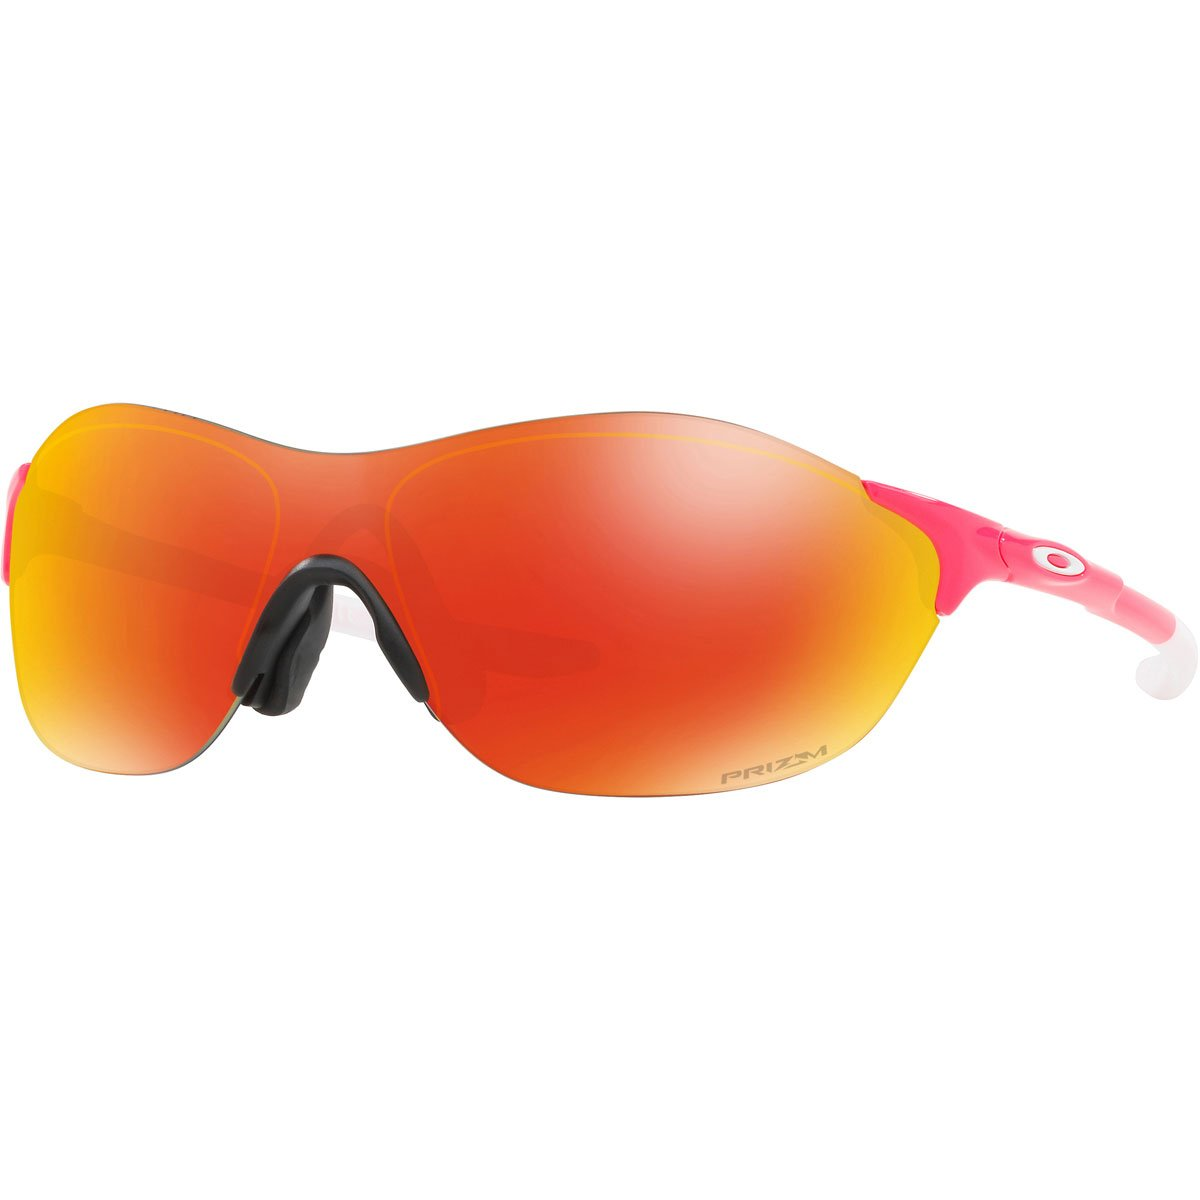 Oakley Men's OO9410 EVZero Swift Asian Fit Rectangular Sunglasses, Neon Pink/Prizm Ruby, 38 mm by Oakley